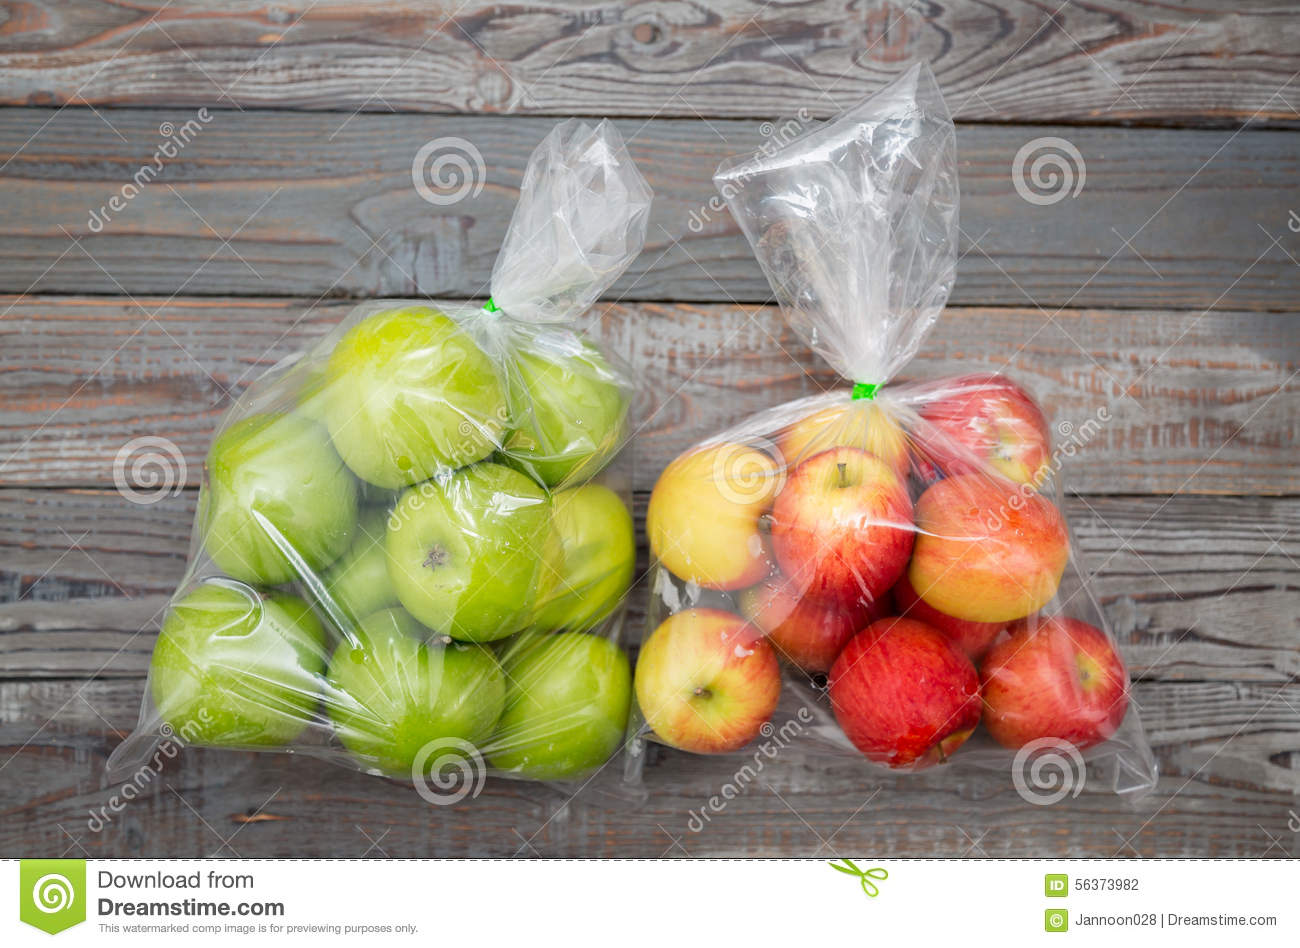 Apple fruit in plastic bag